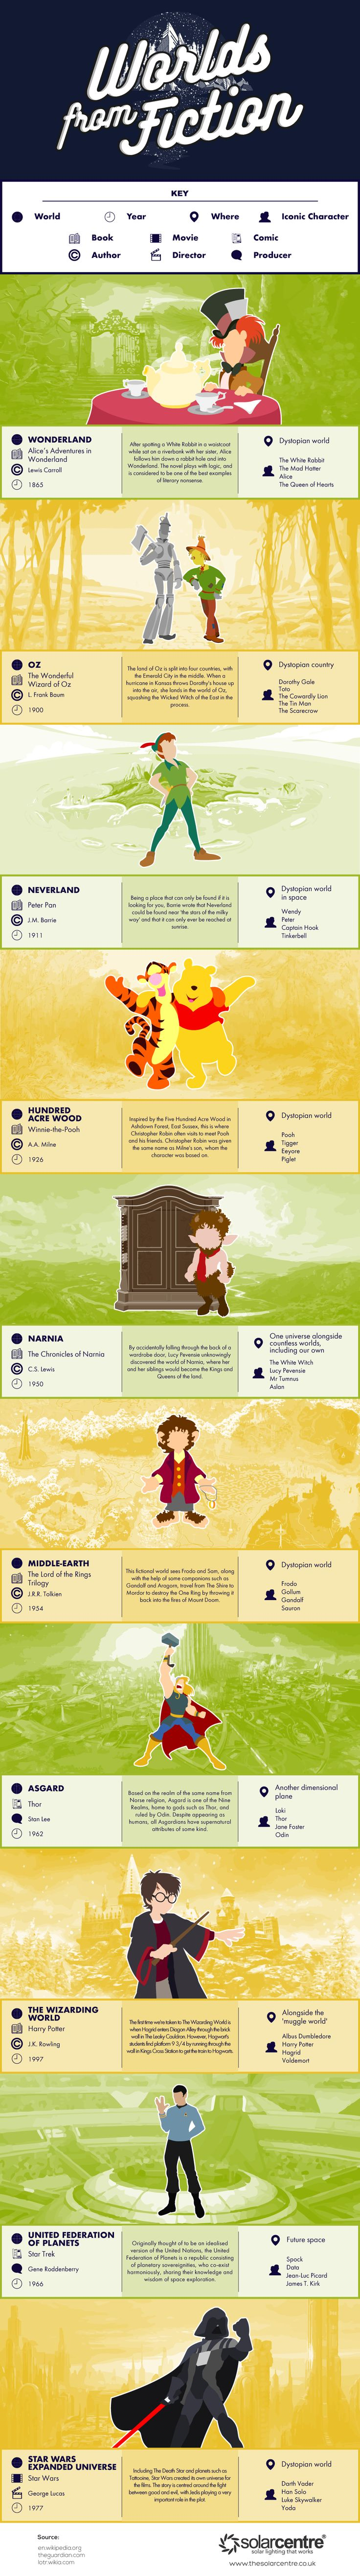 Worlds From Fiction #Infographic #Entertainment